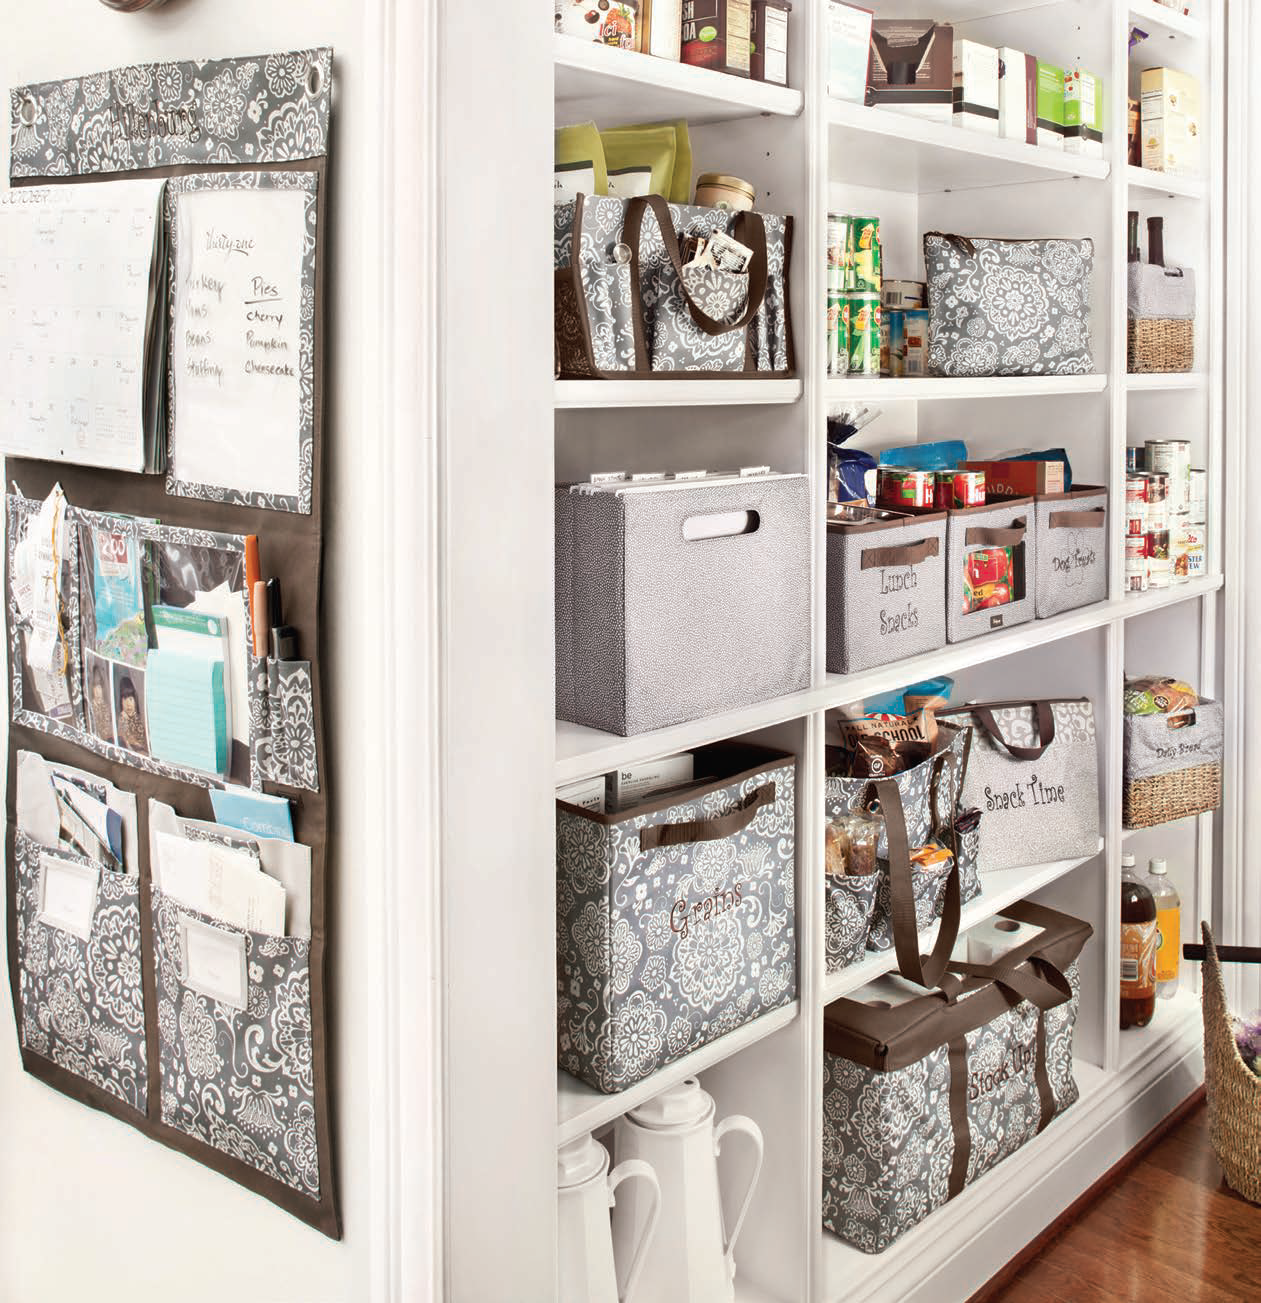 10 Inspiring Pantry Designs: Here's Some Inspiration Using Our Thirty-One Pantry